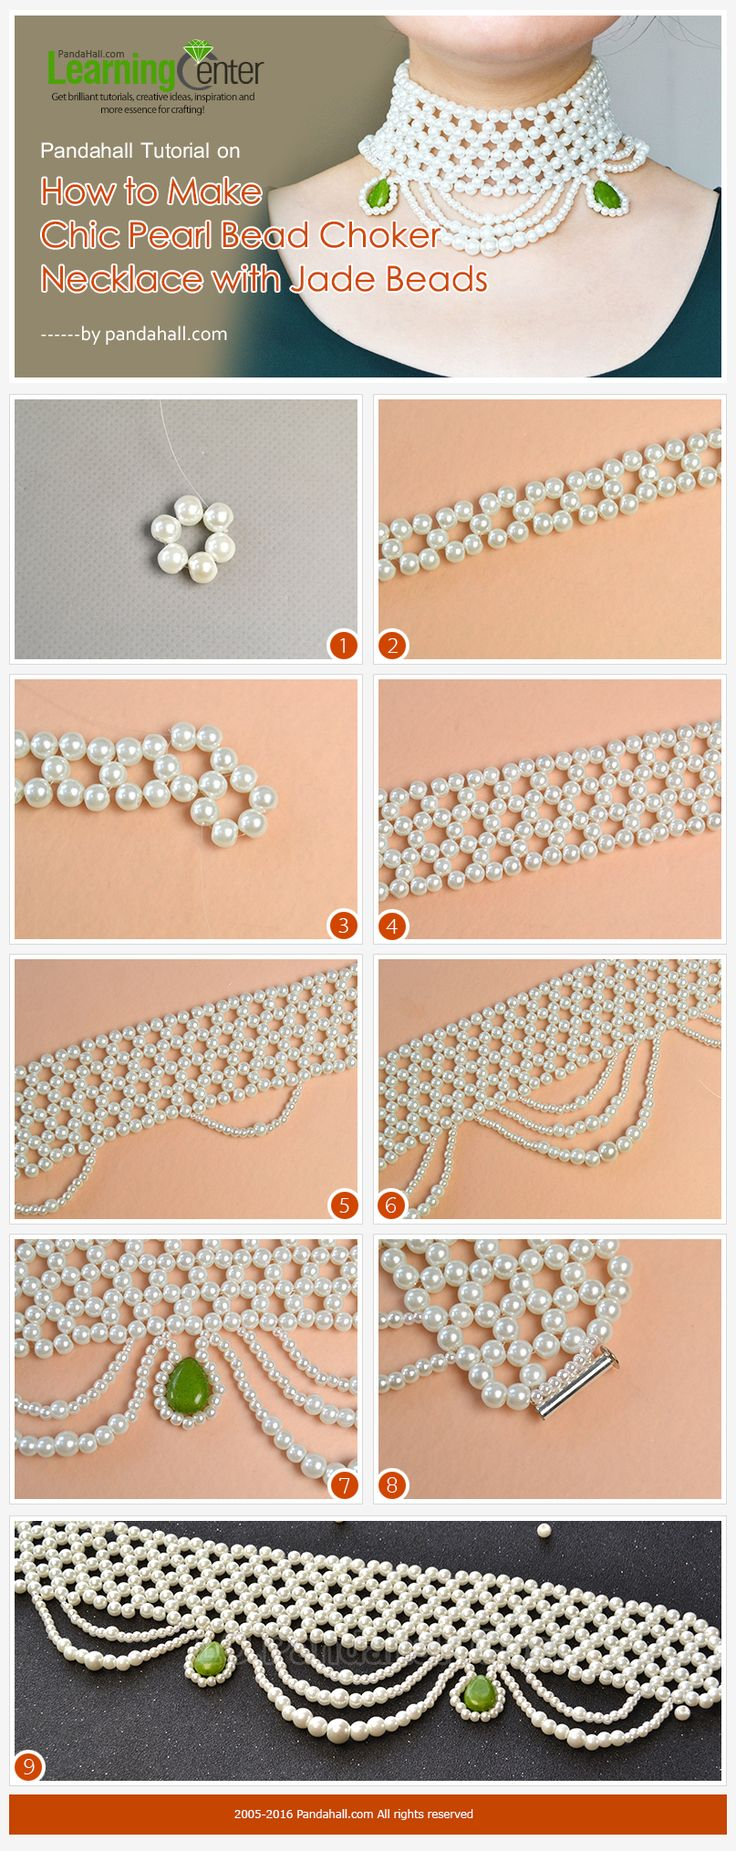 Pandahall Tutorial on How to Make Chic Pearl Bead Choker Necklace with Jade Beads from LC.Pandahall.com